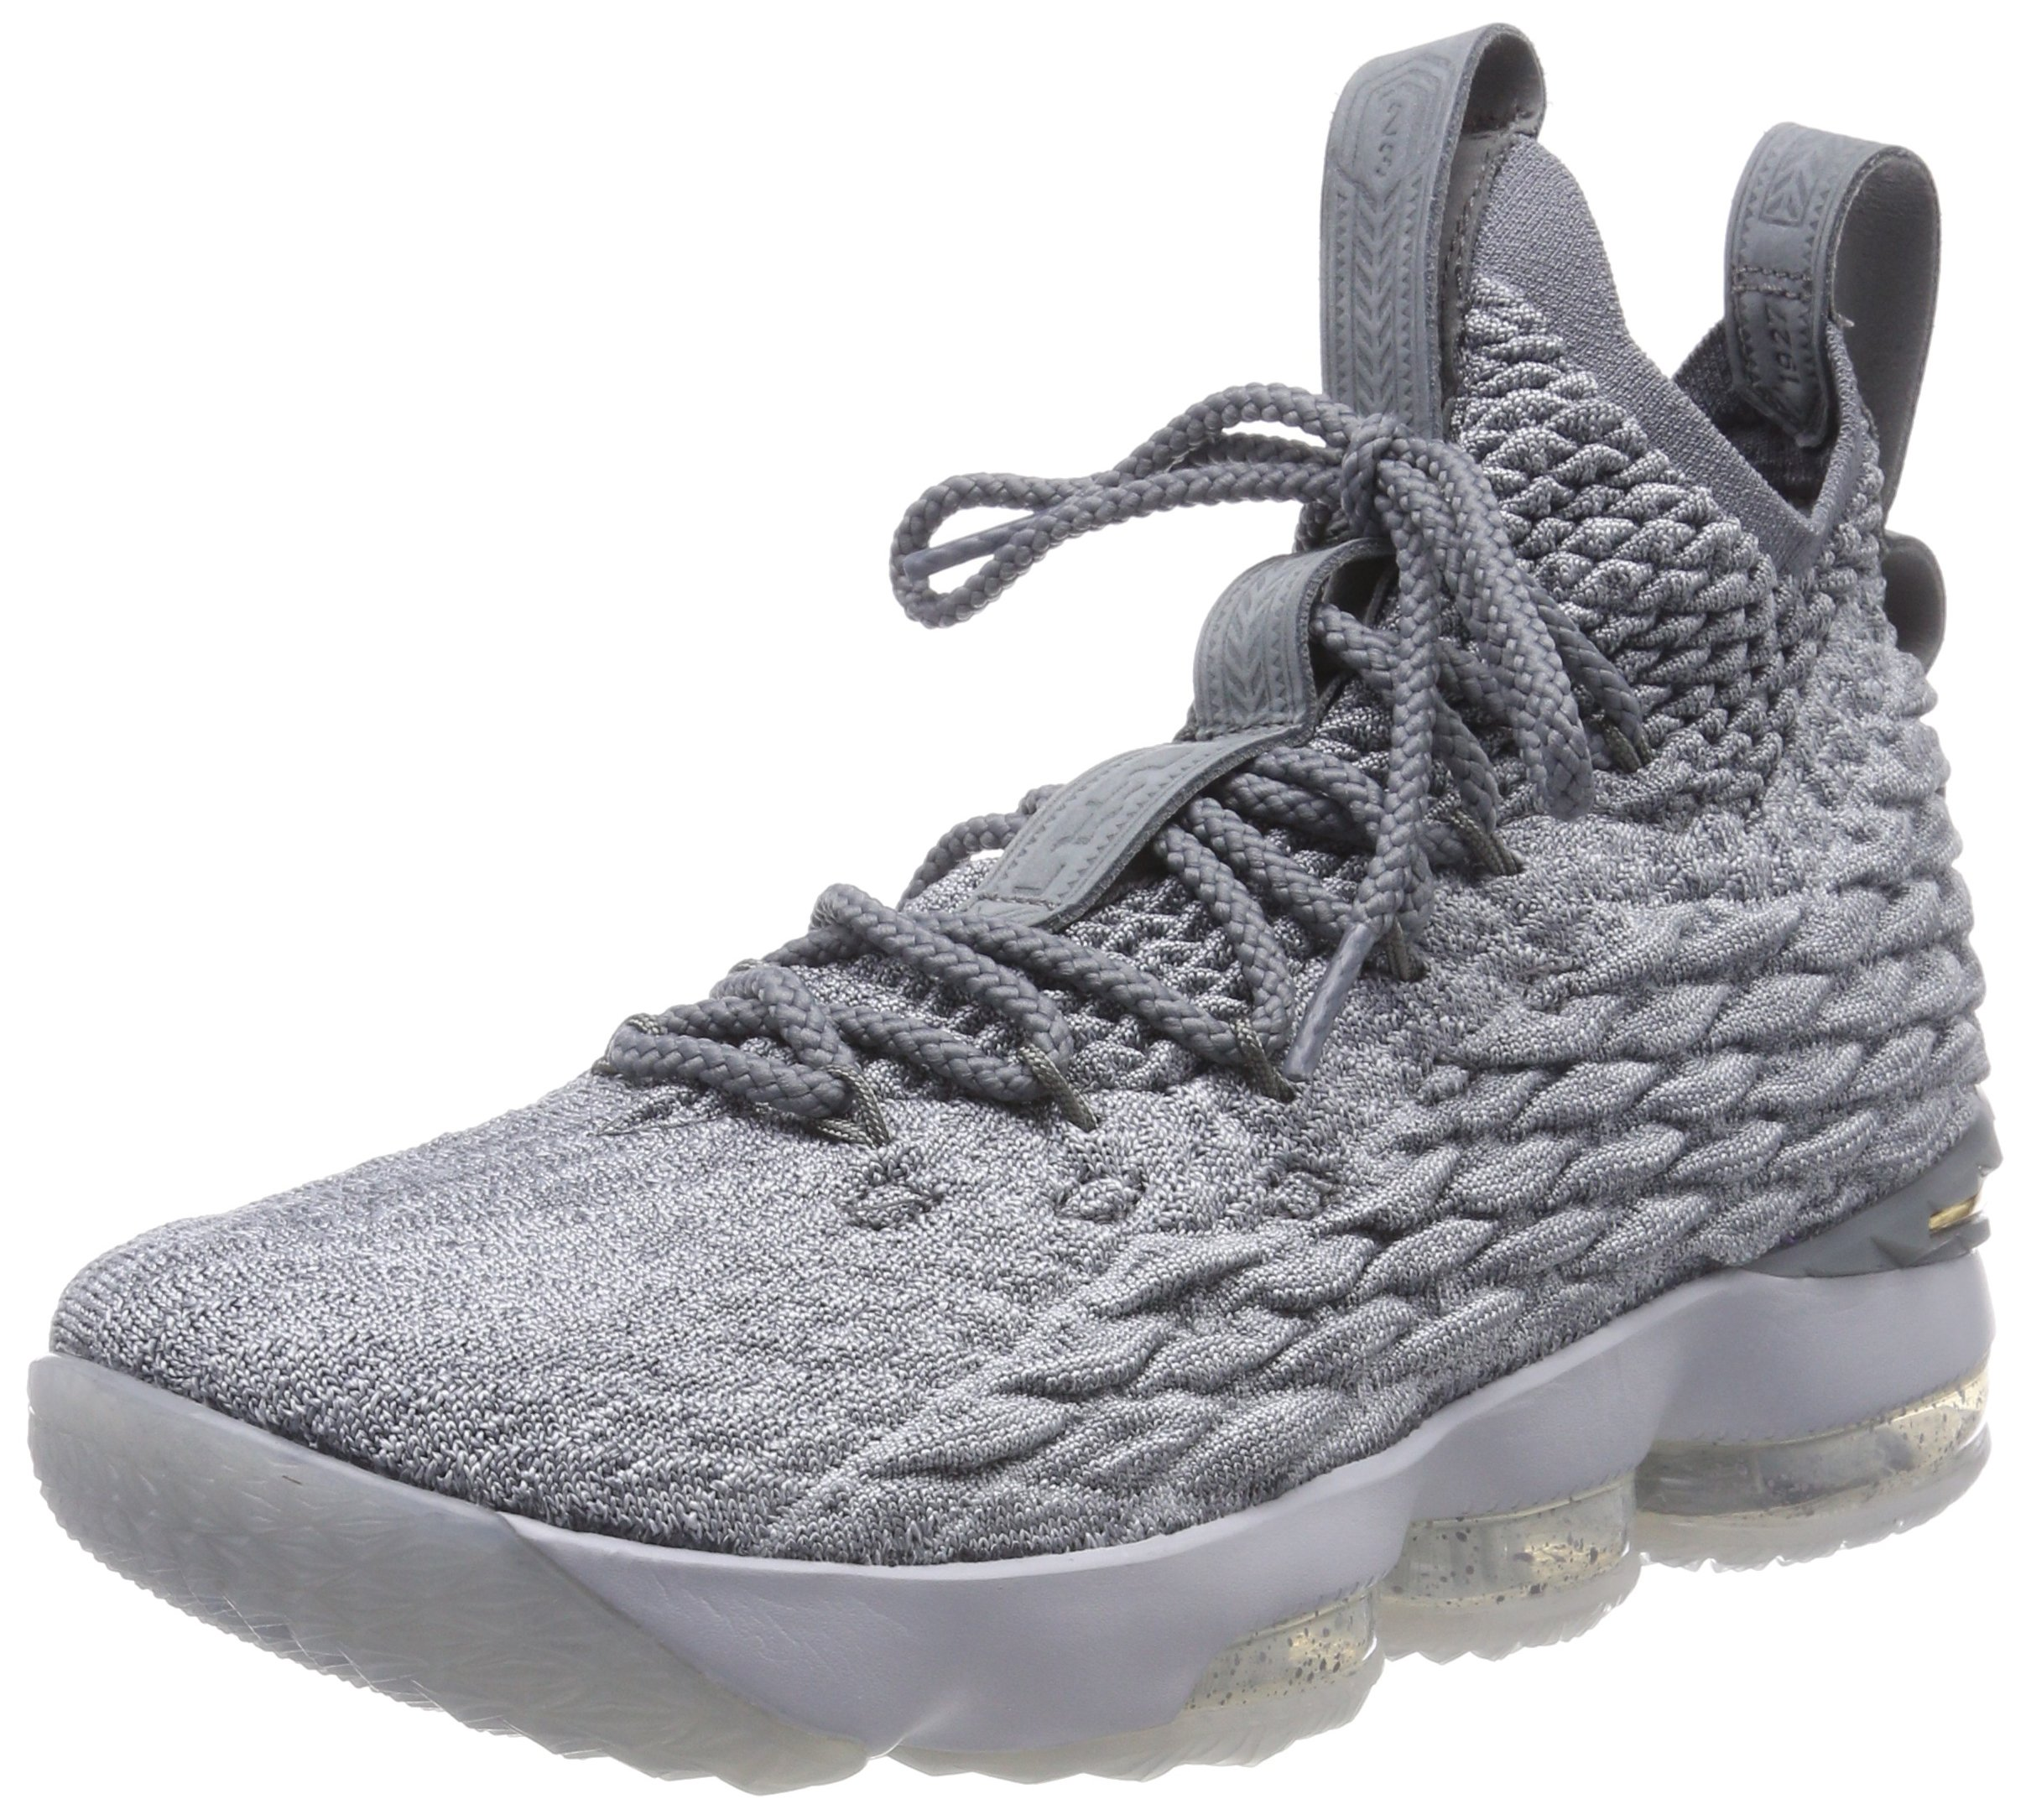 31186ad1b0af Galleon - Nike Mens Lebron 15 Basketball Shoes Wolf Grey Cool Grey Metallic  Gold 897648-005 Size 8